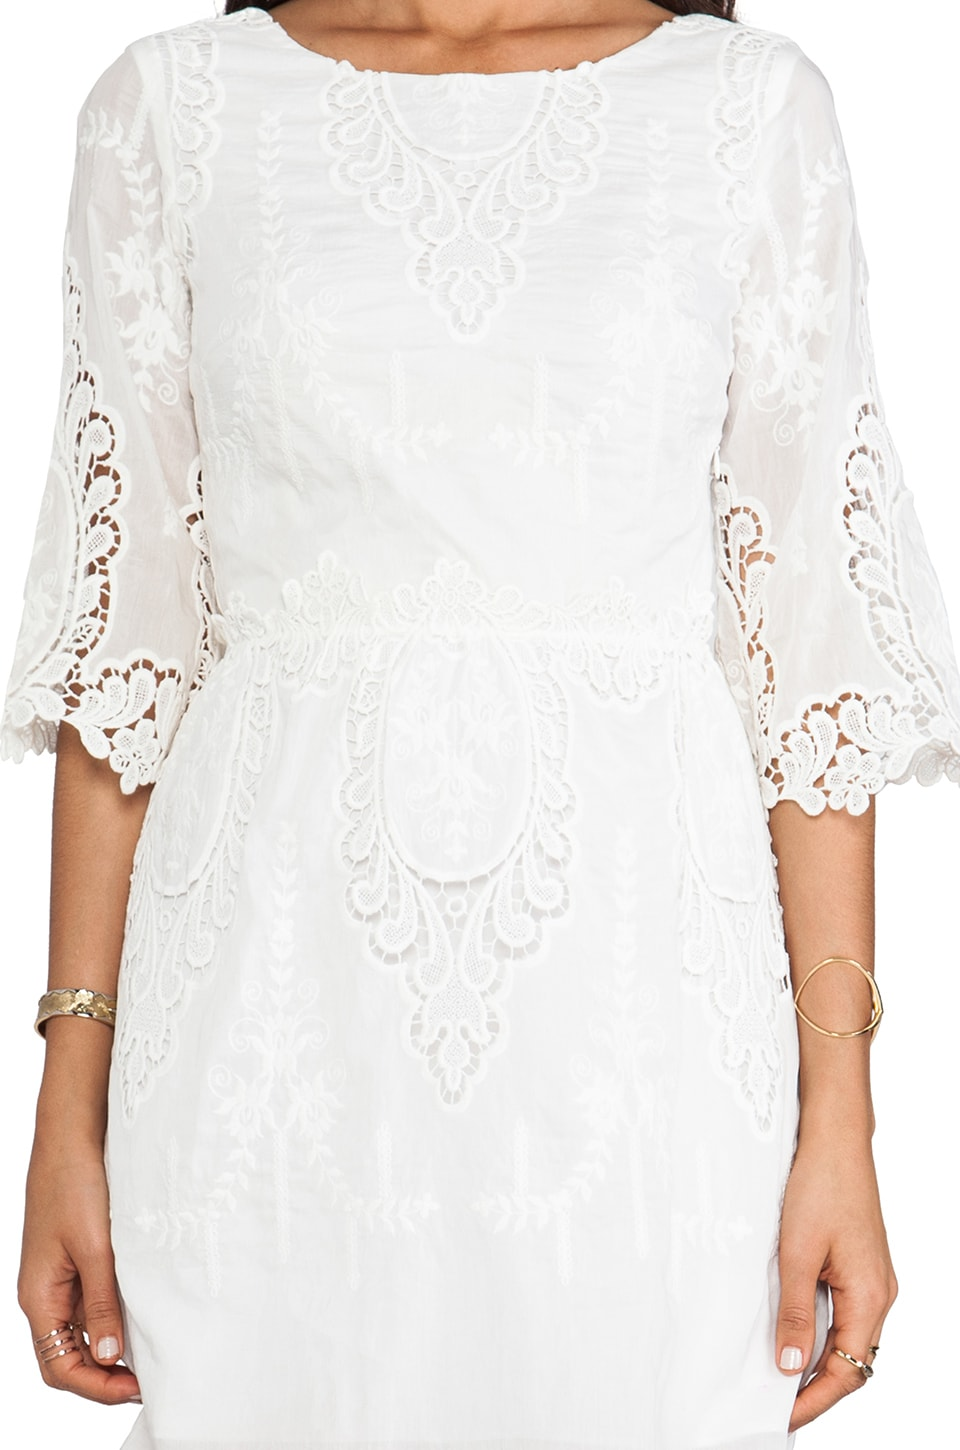 Dolce Vita Nella Dress in White